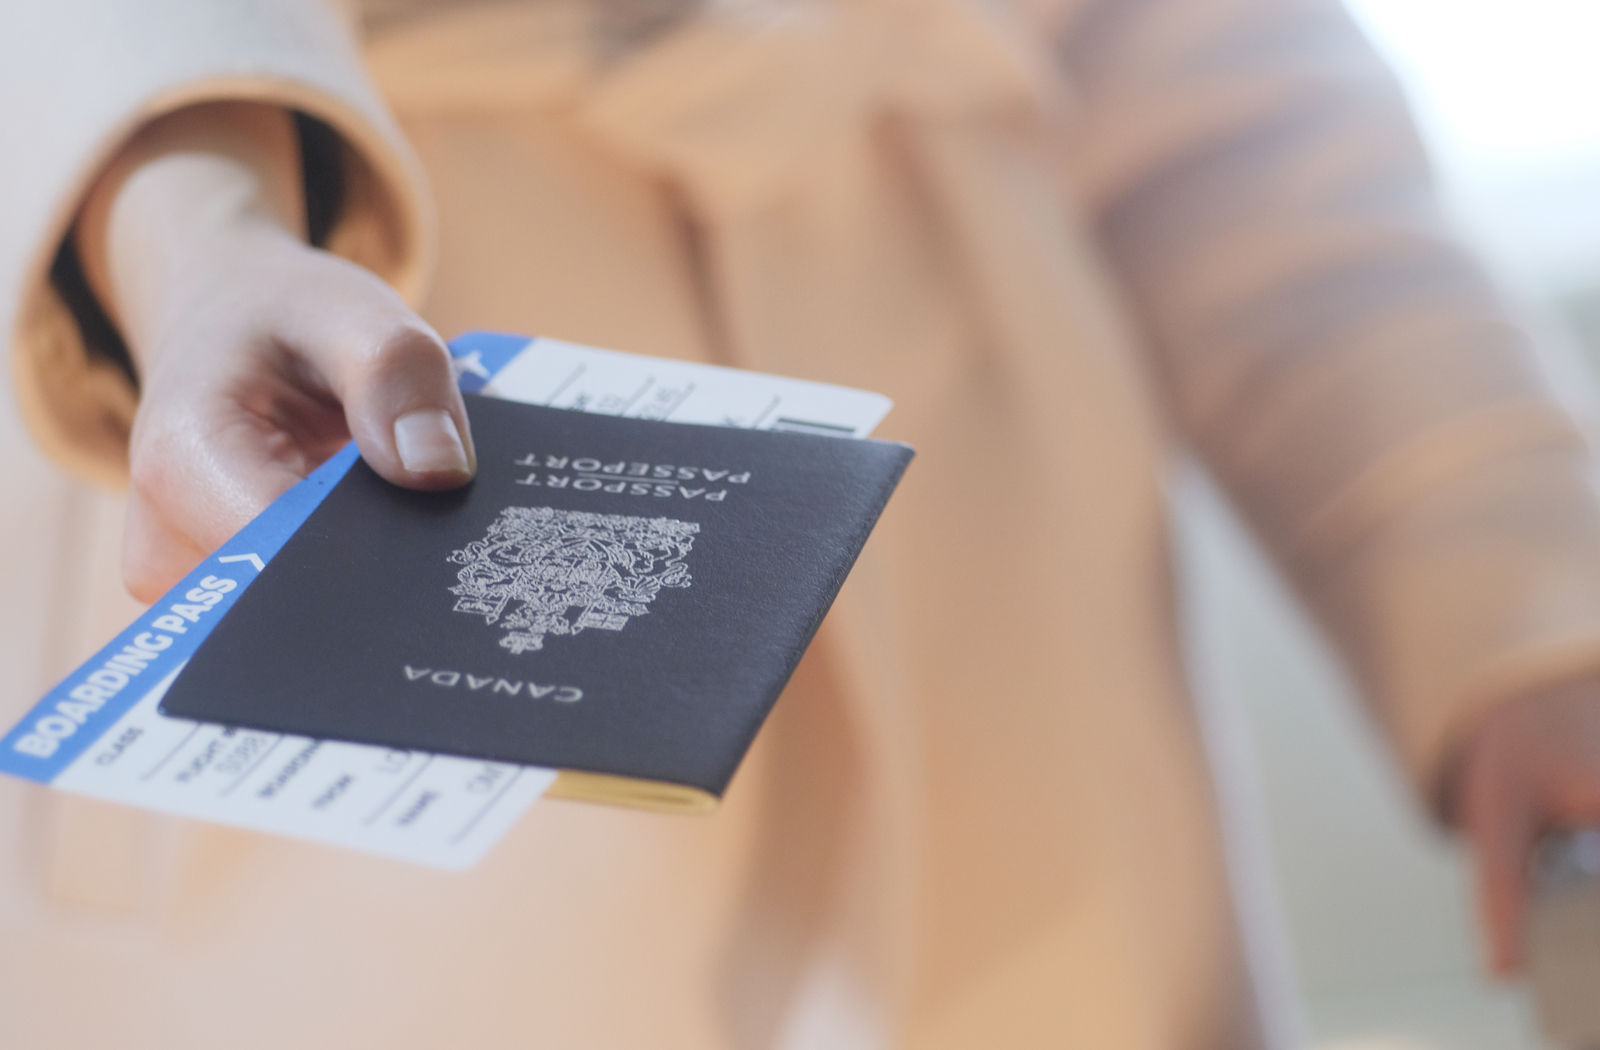 A man reaching his hand out with a passport